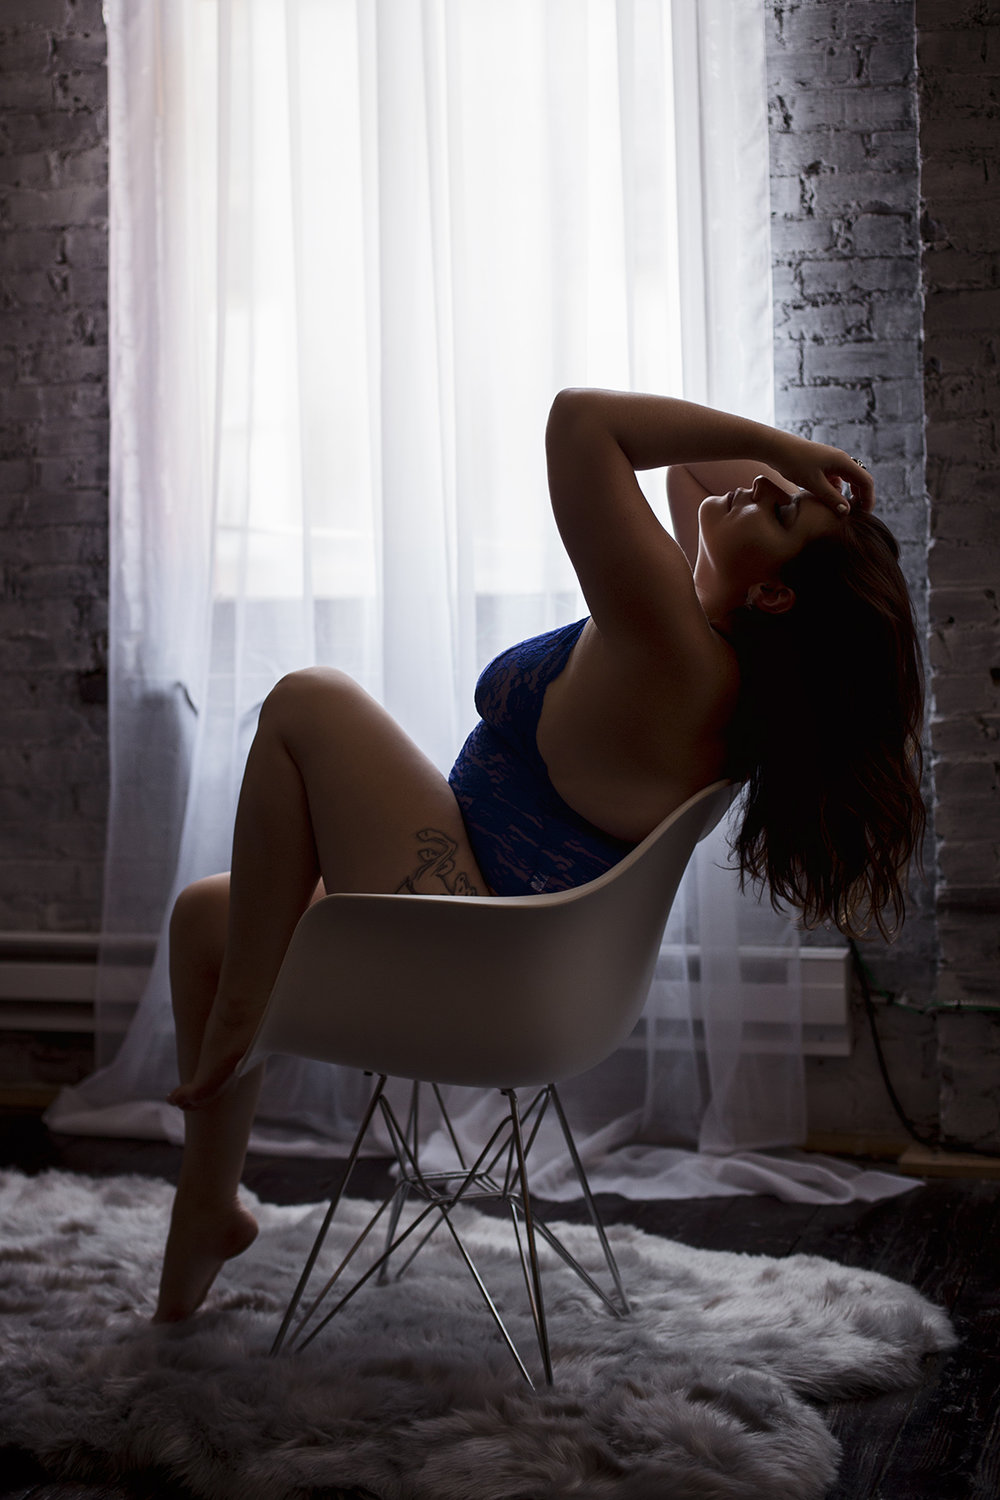 kansas-city-boudoir-photography.jpg